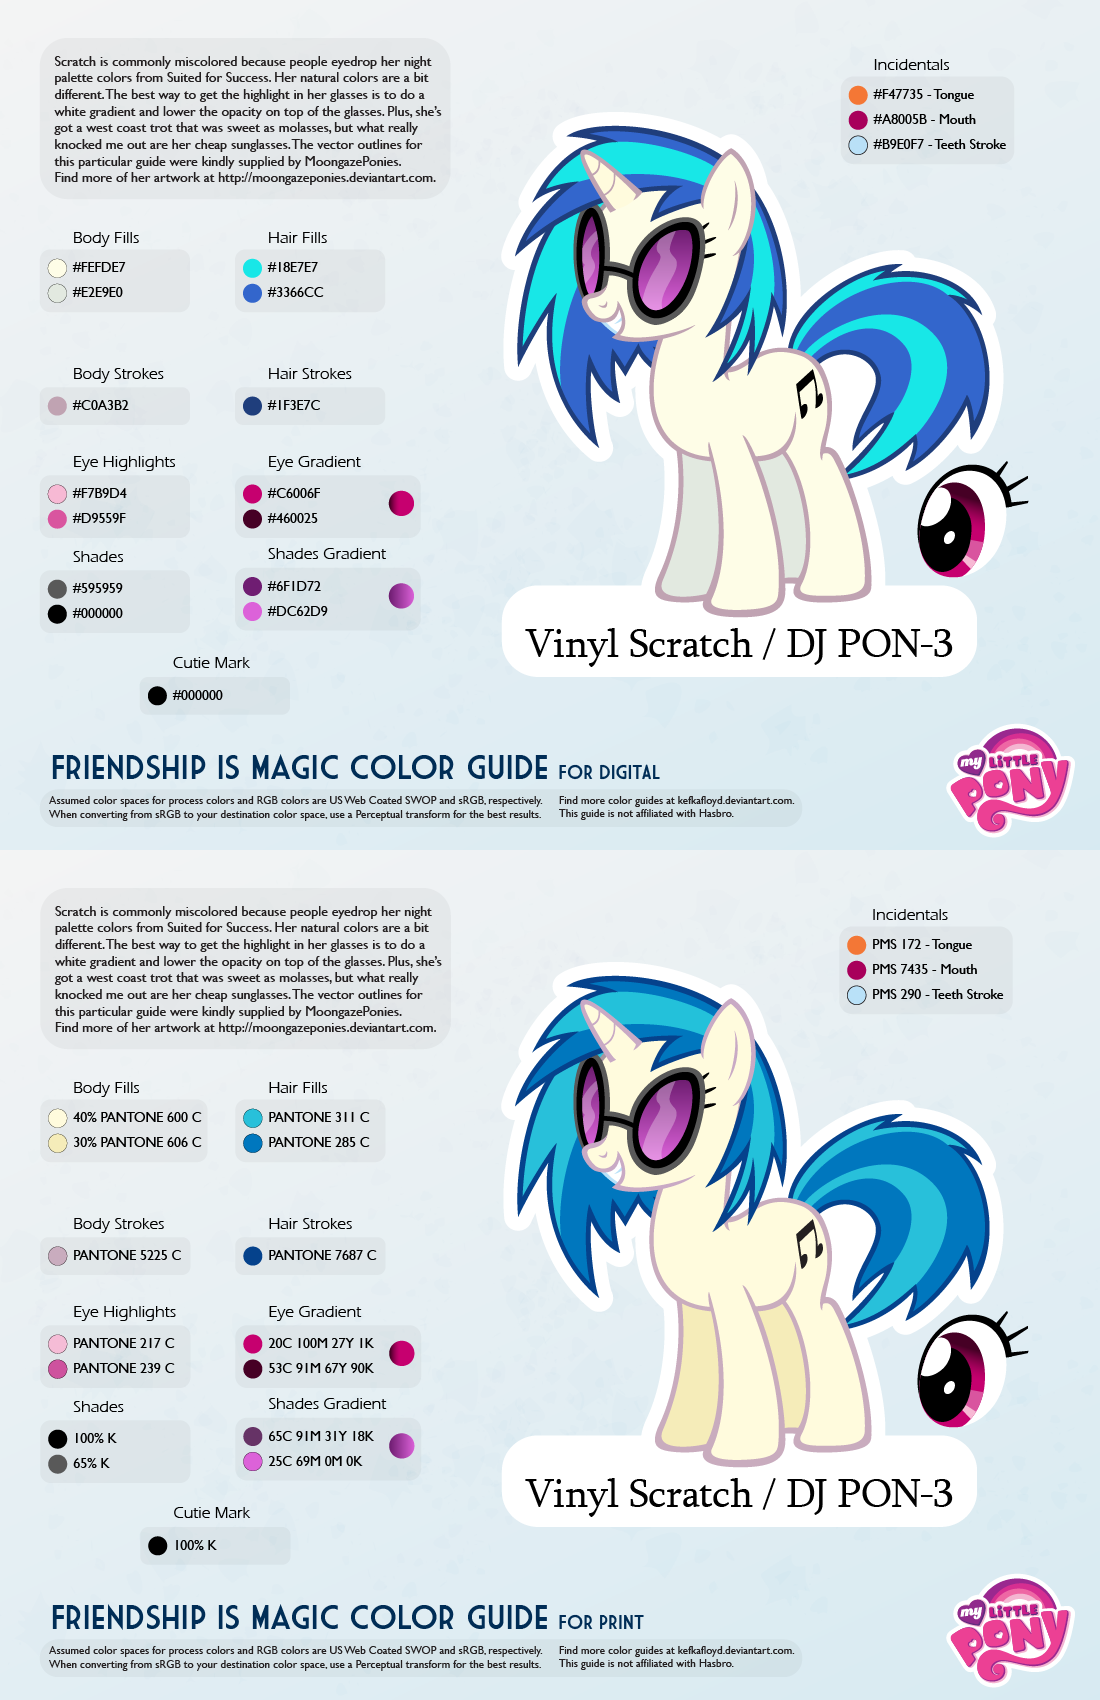 Mlp coloring pages dj pon 3 -  Vinyl Scratch Dj Pon 3 Color Guide 2 0 Updated By Kefkafloyd